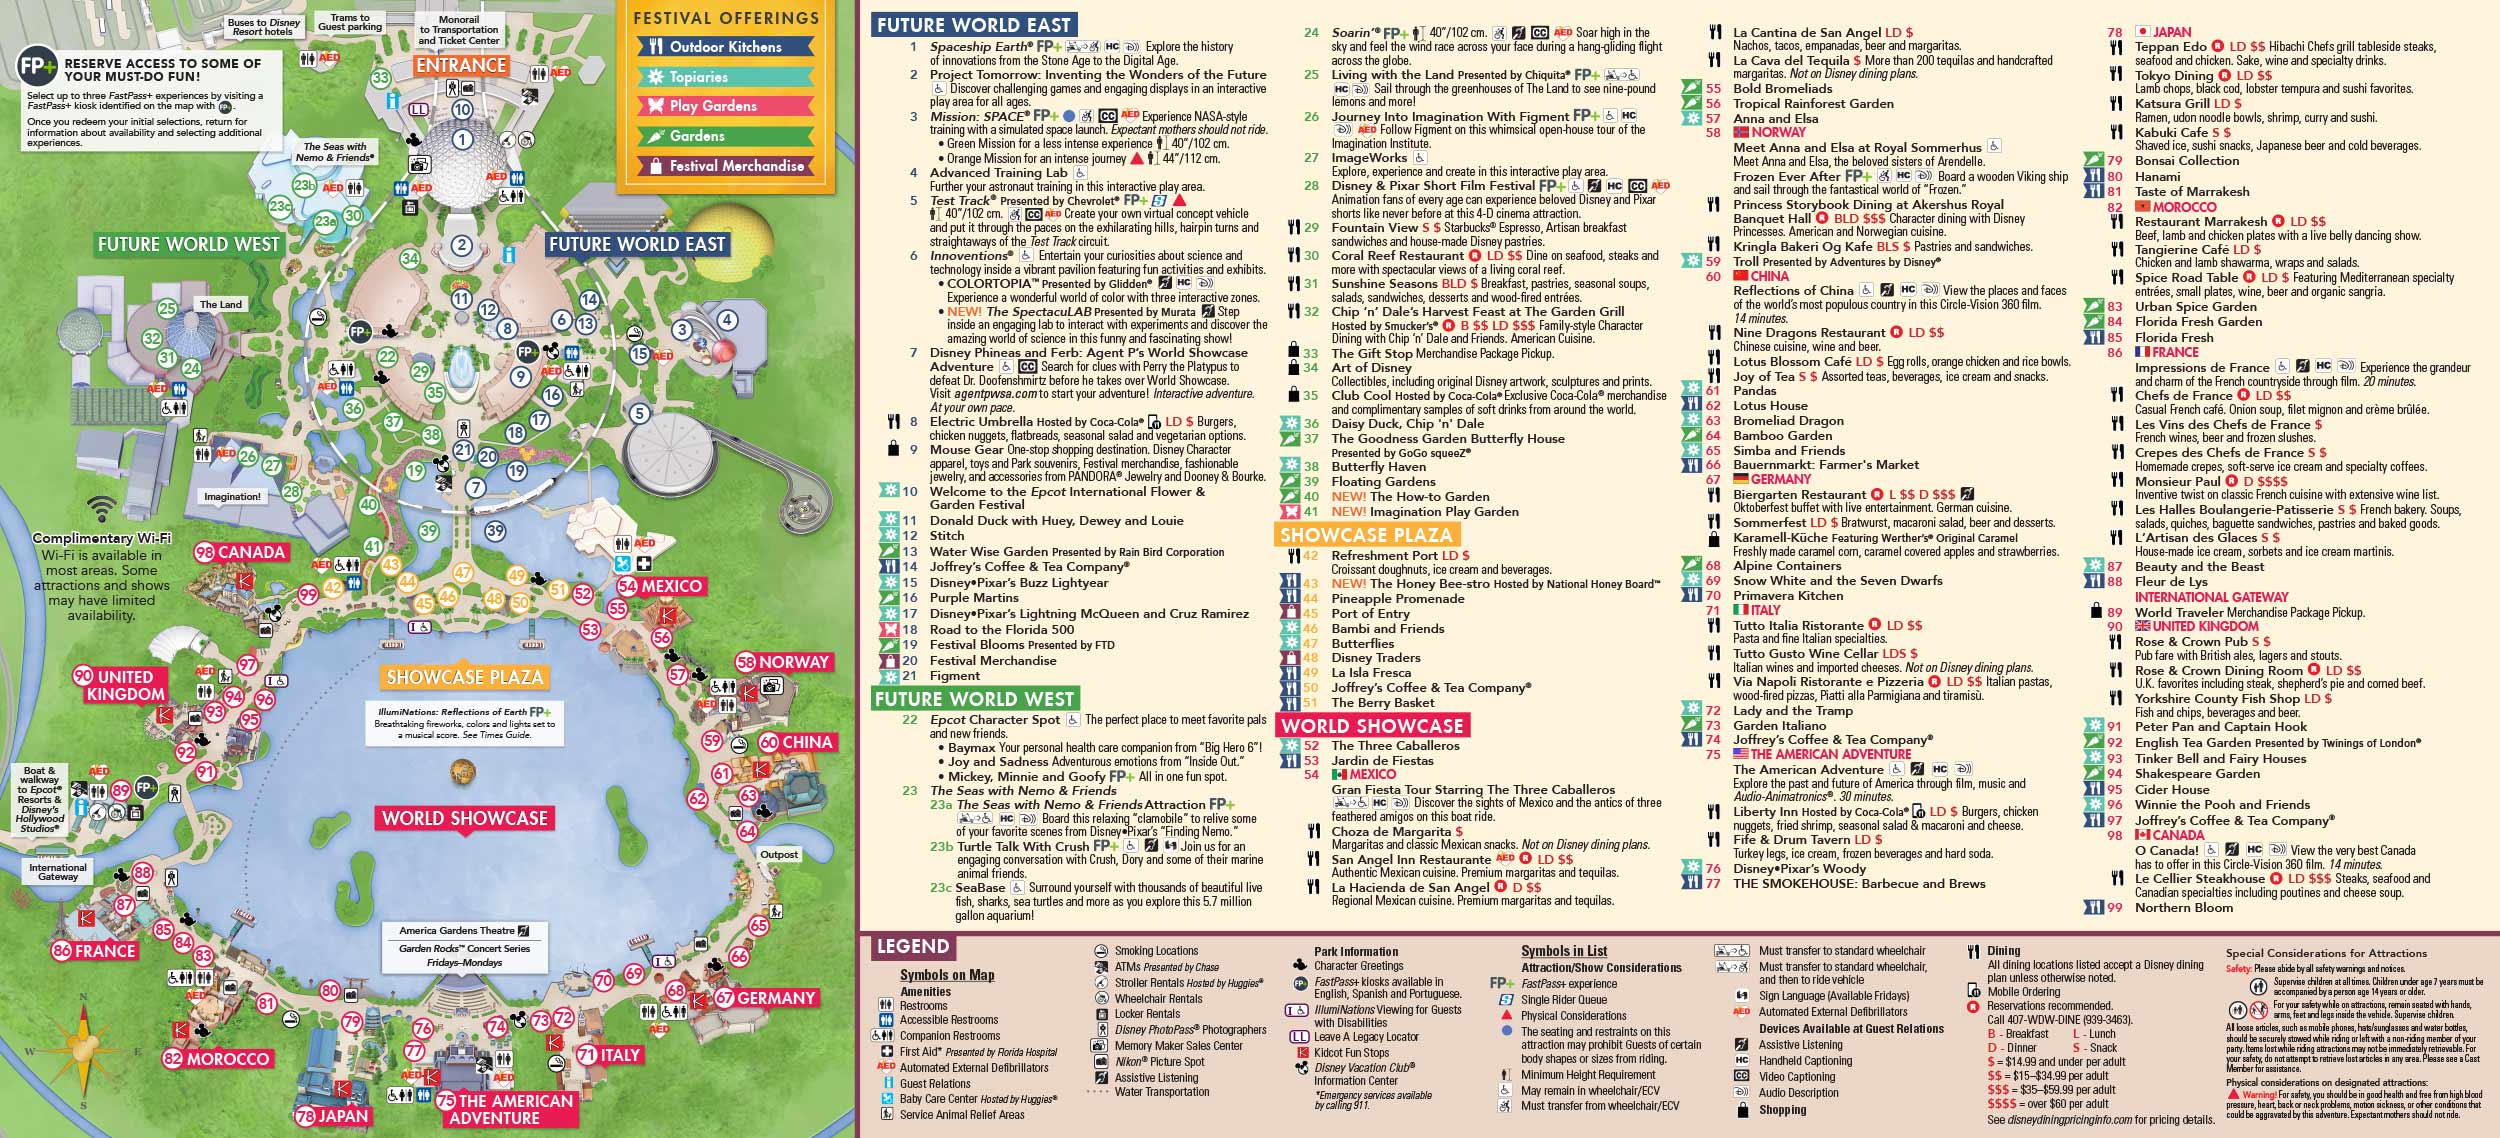 Disney World Epcot Map From Wdwinfo 2 - Ameliabd - Epcot Florida Map